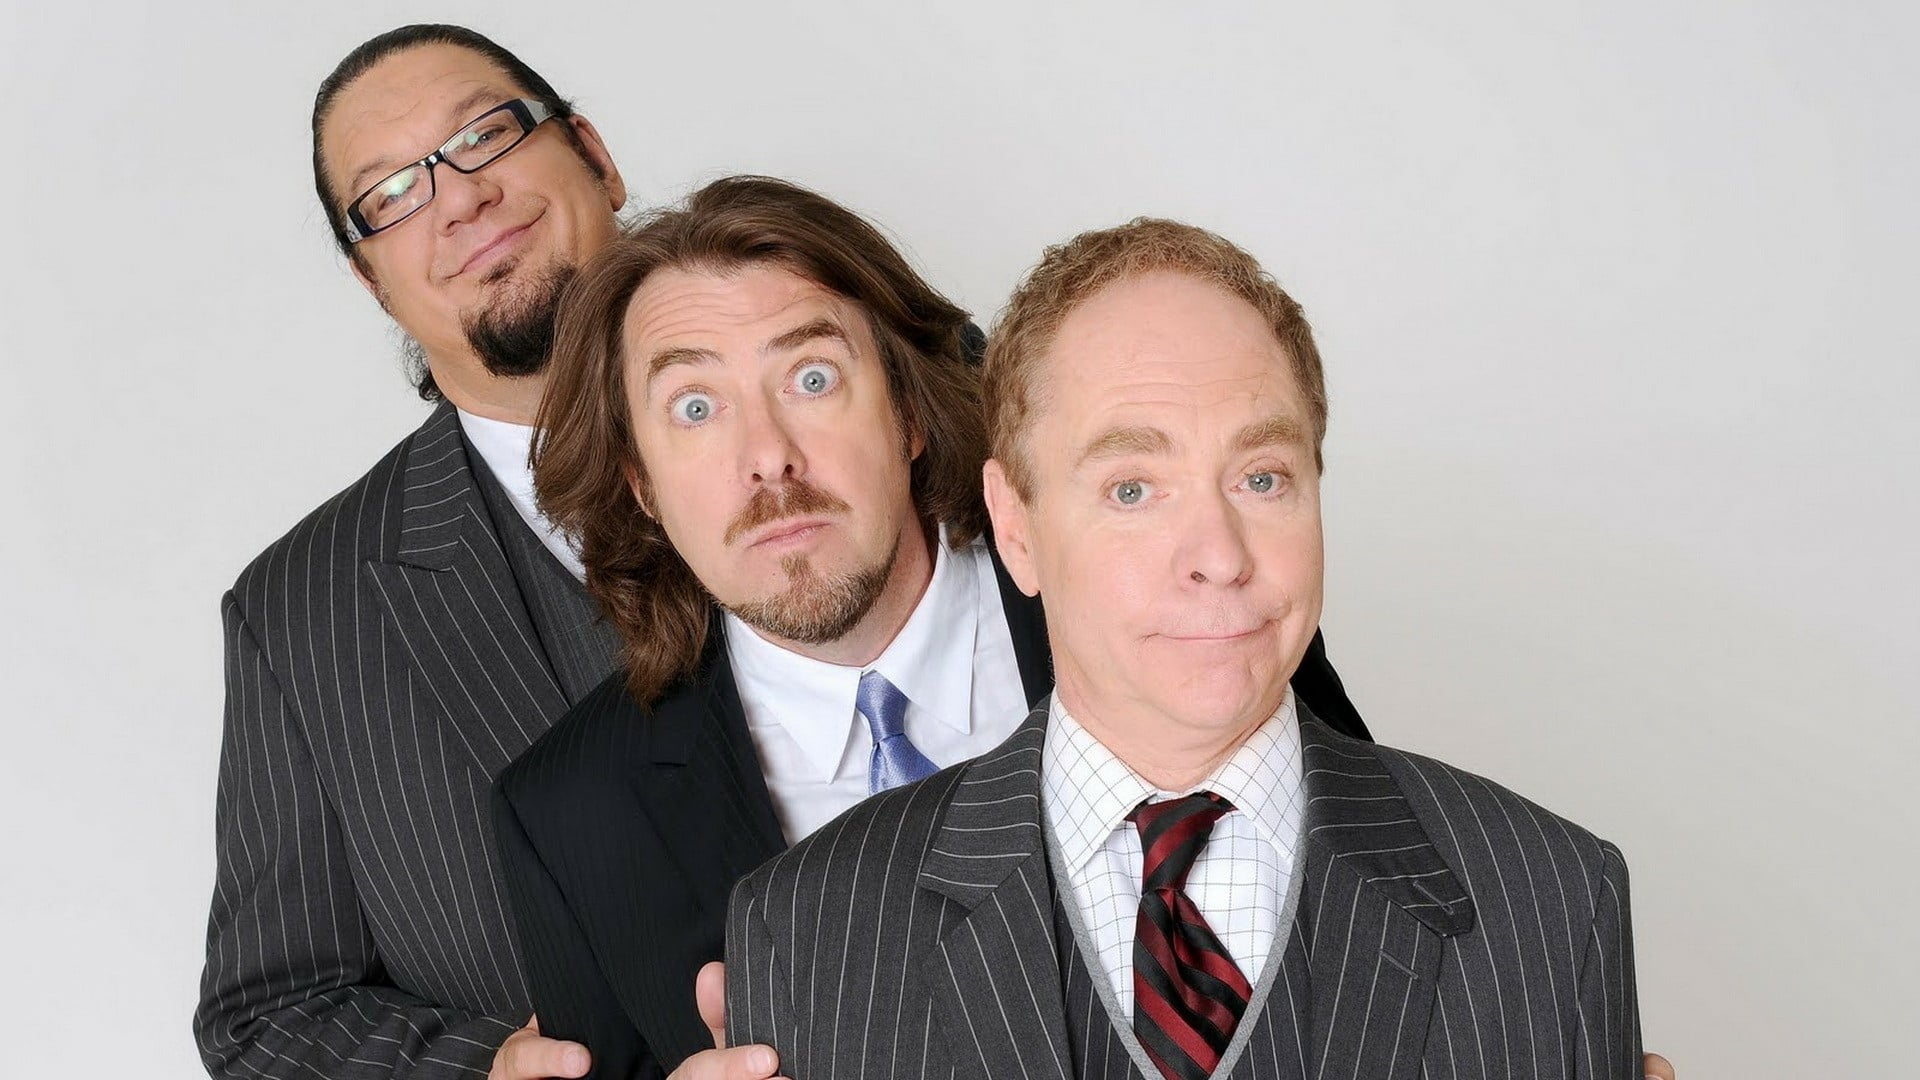 Penn & Teller: Fool Us - Season 3